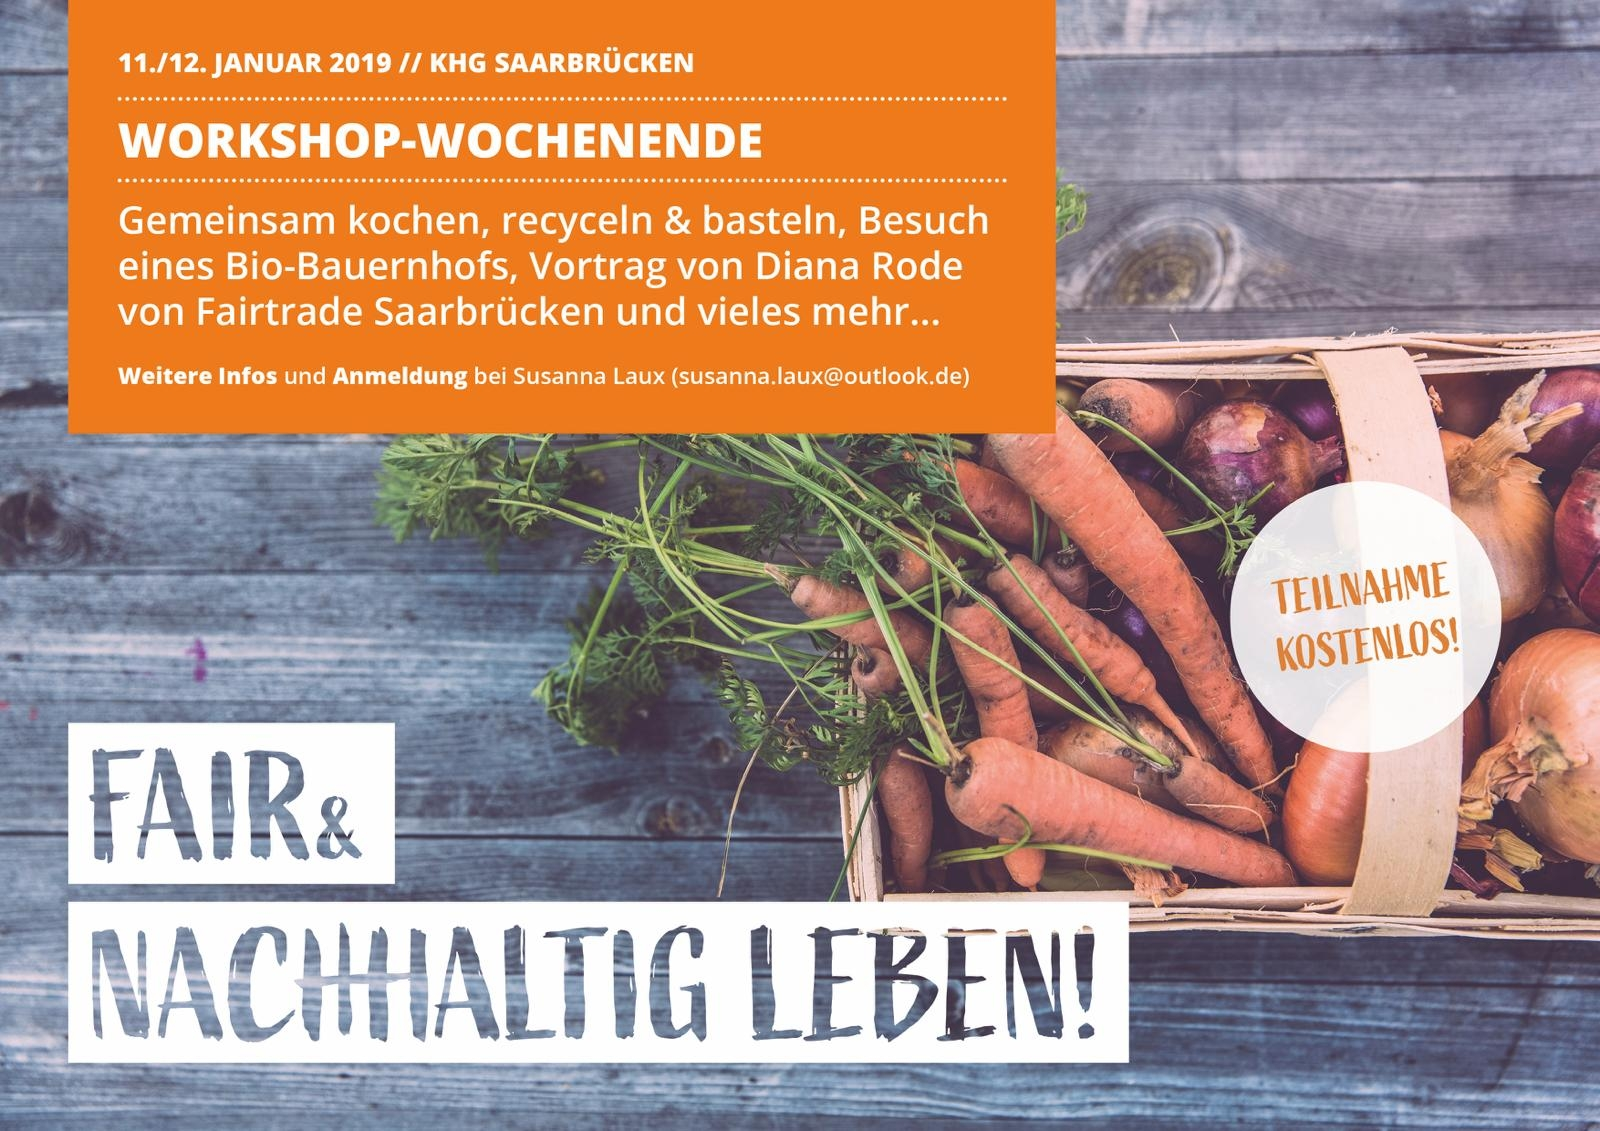 Fair-Trade Workshop-Wochenende